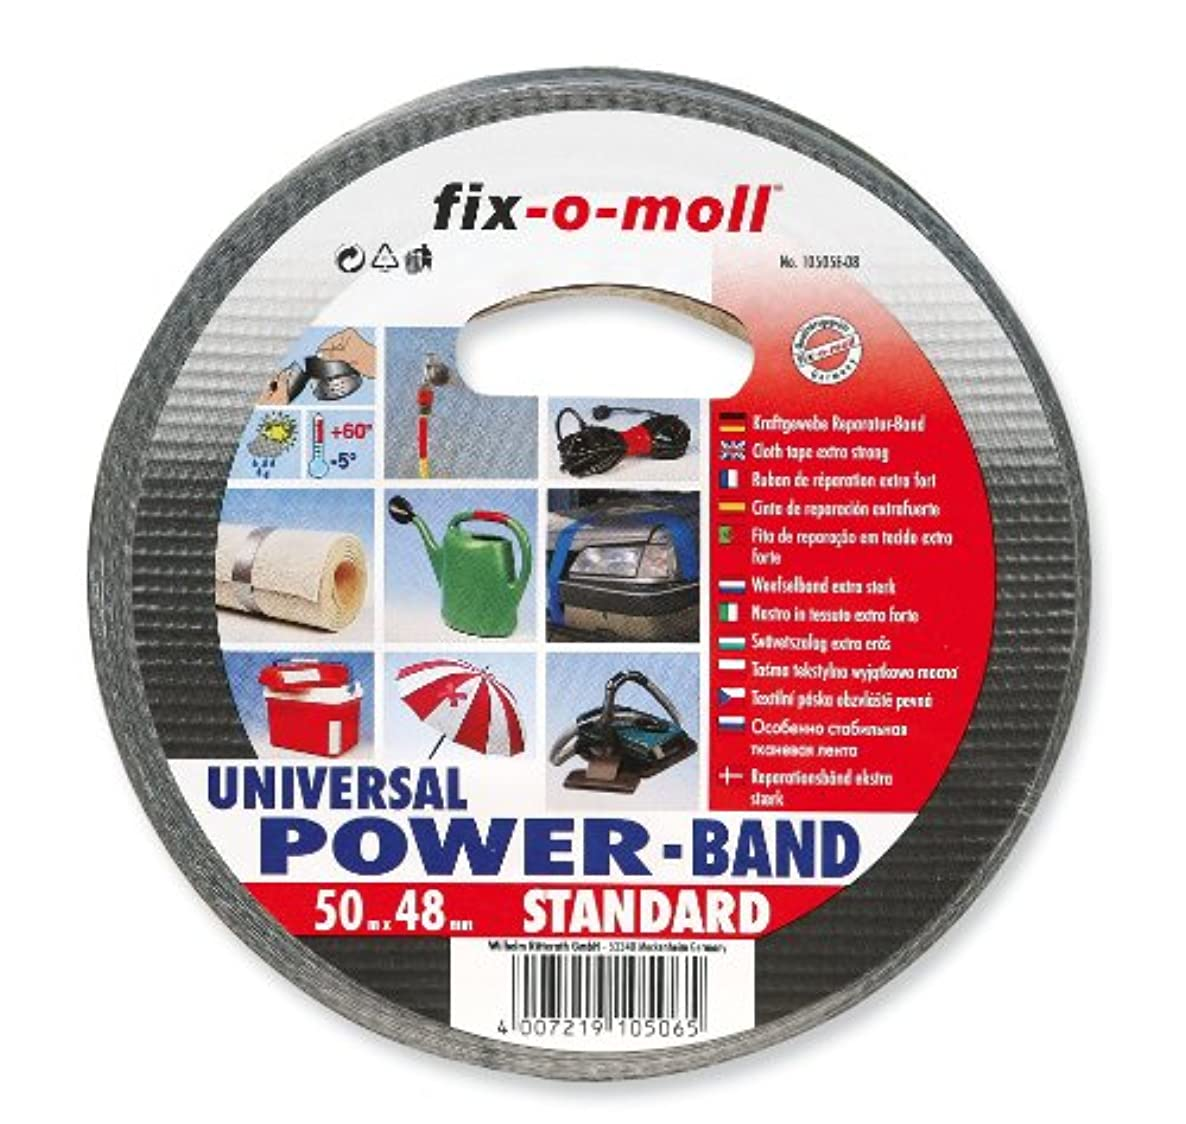 RITTERRATH Power-Band Standard 0 Reinforced Repair Tape Extra-Strong 50 m x 48 mm Black by